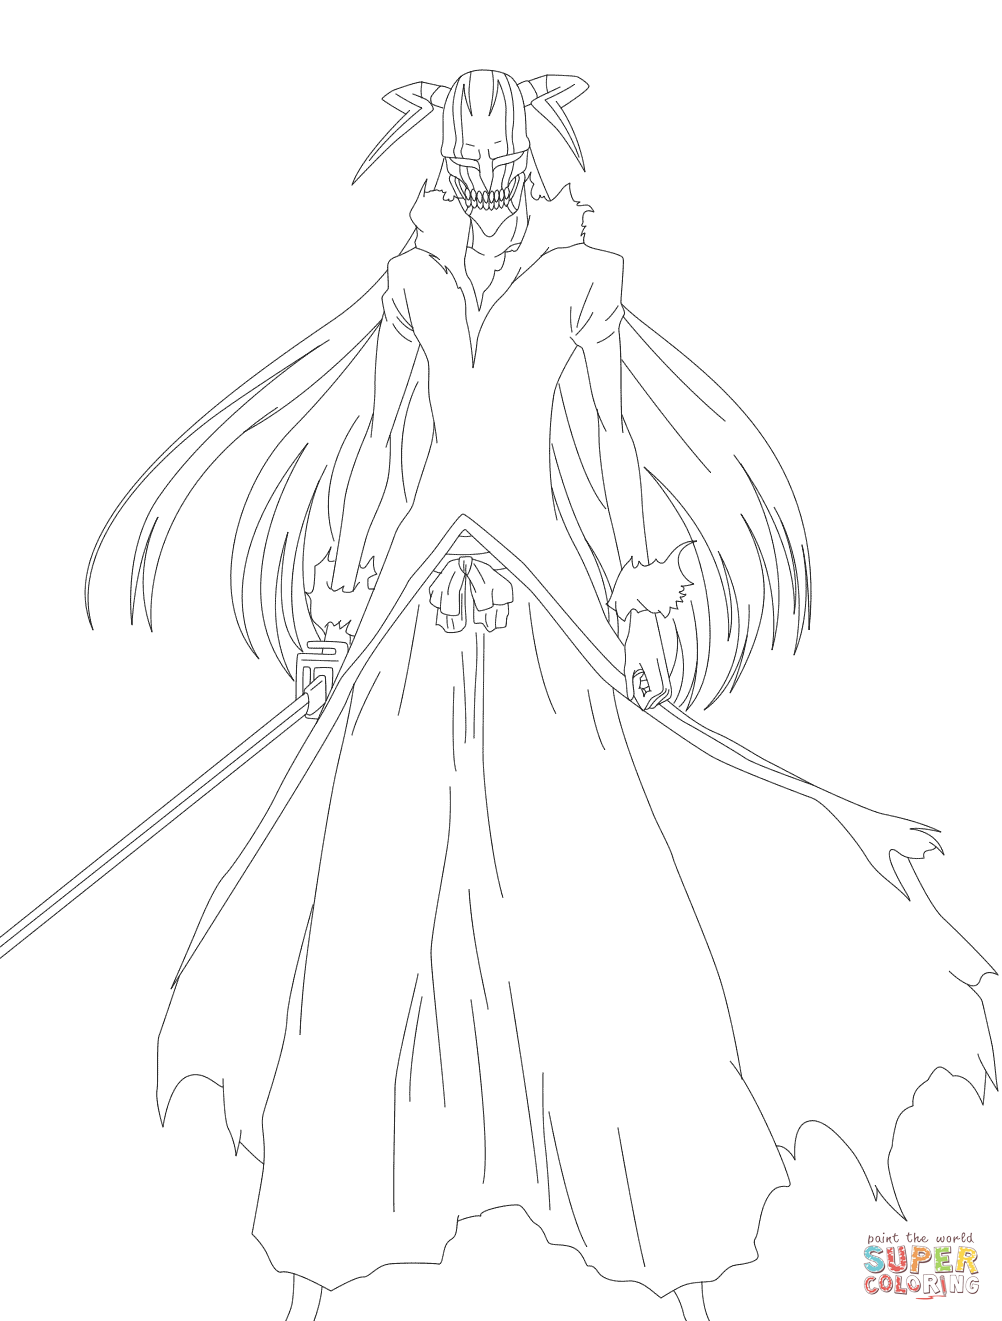 Hollow Ichigo Coloring Page Free Printable Coloring Pages